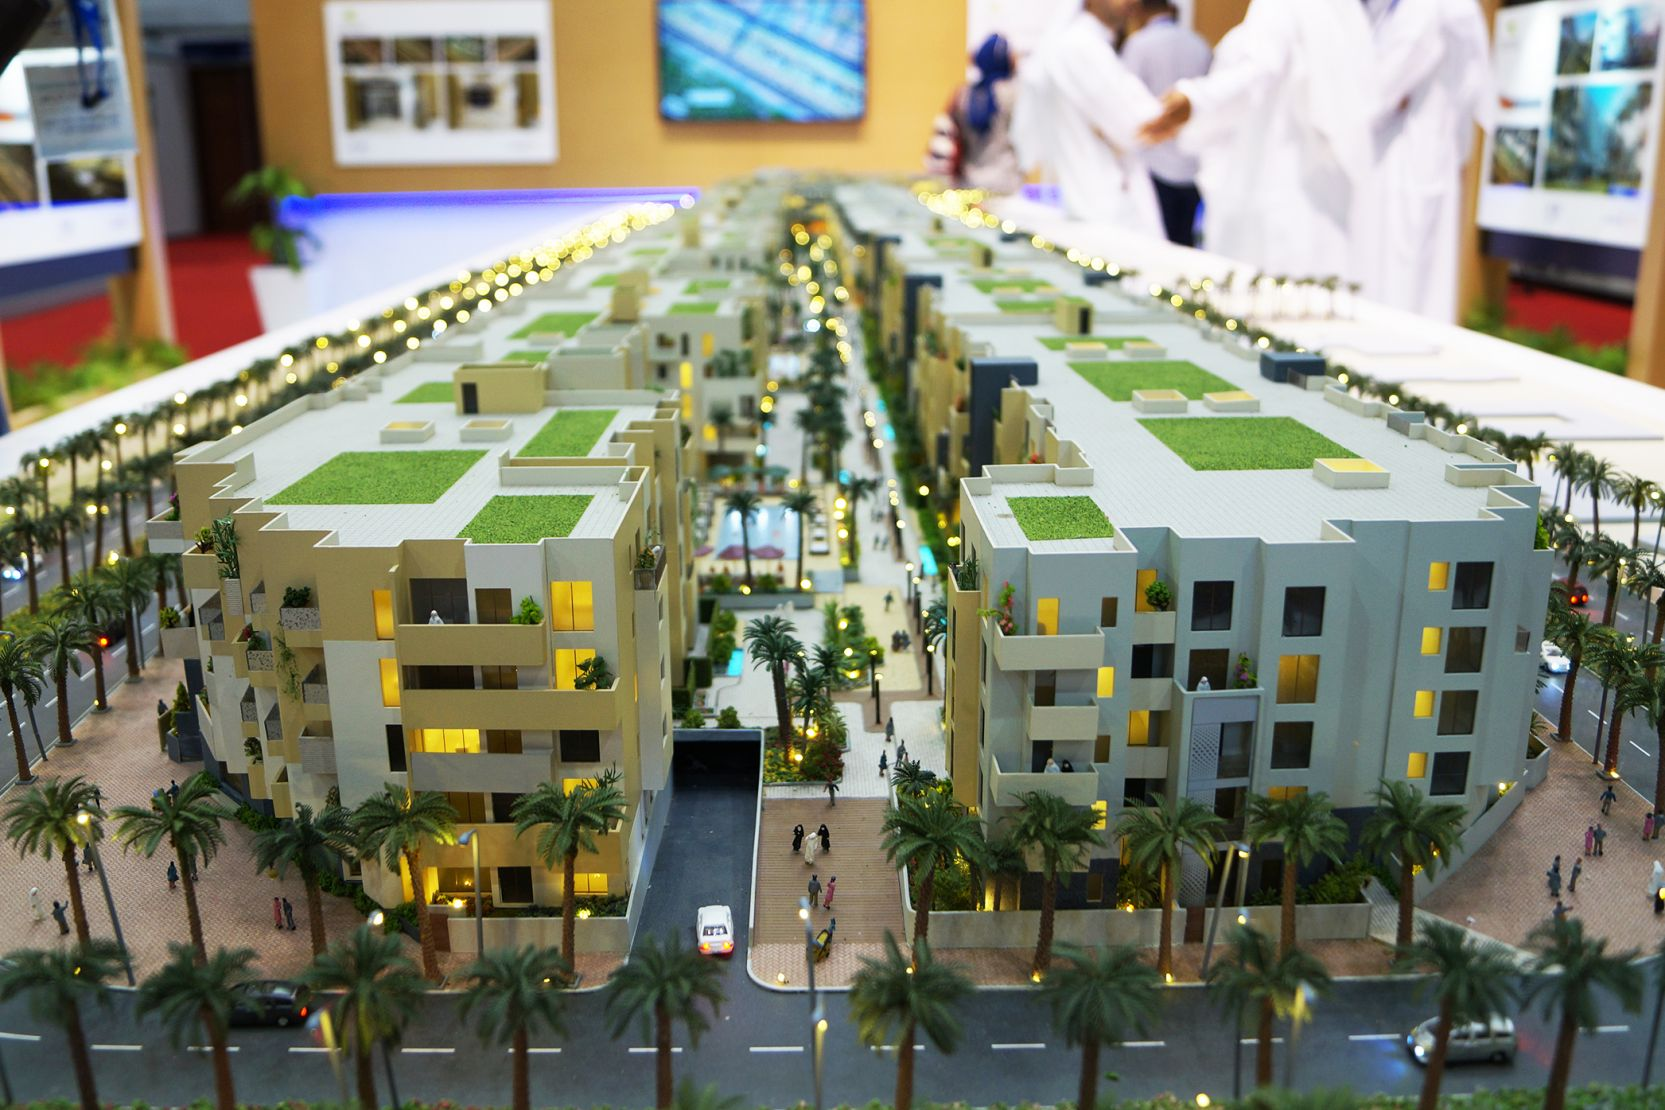 Dubai Investments signs AED 1 bln project financing deal